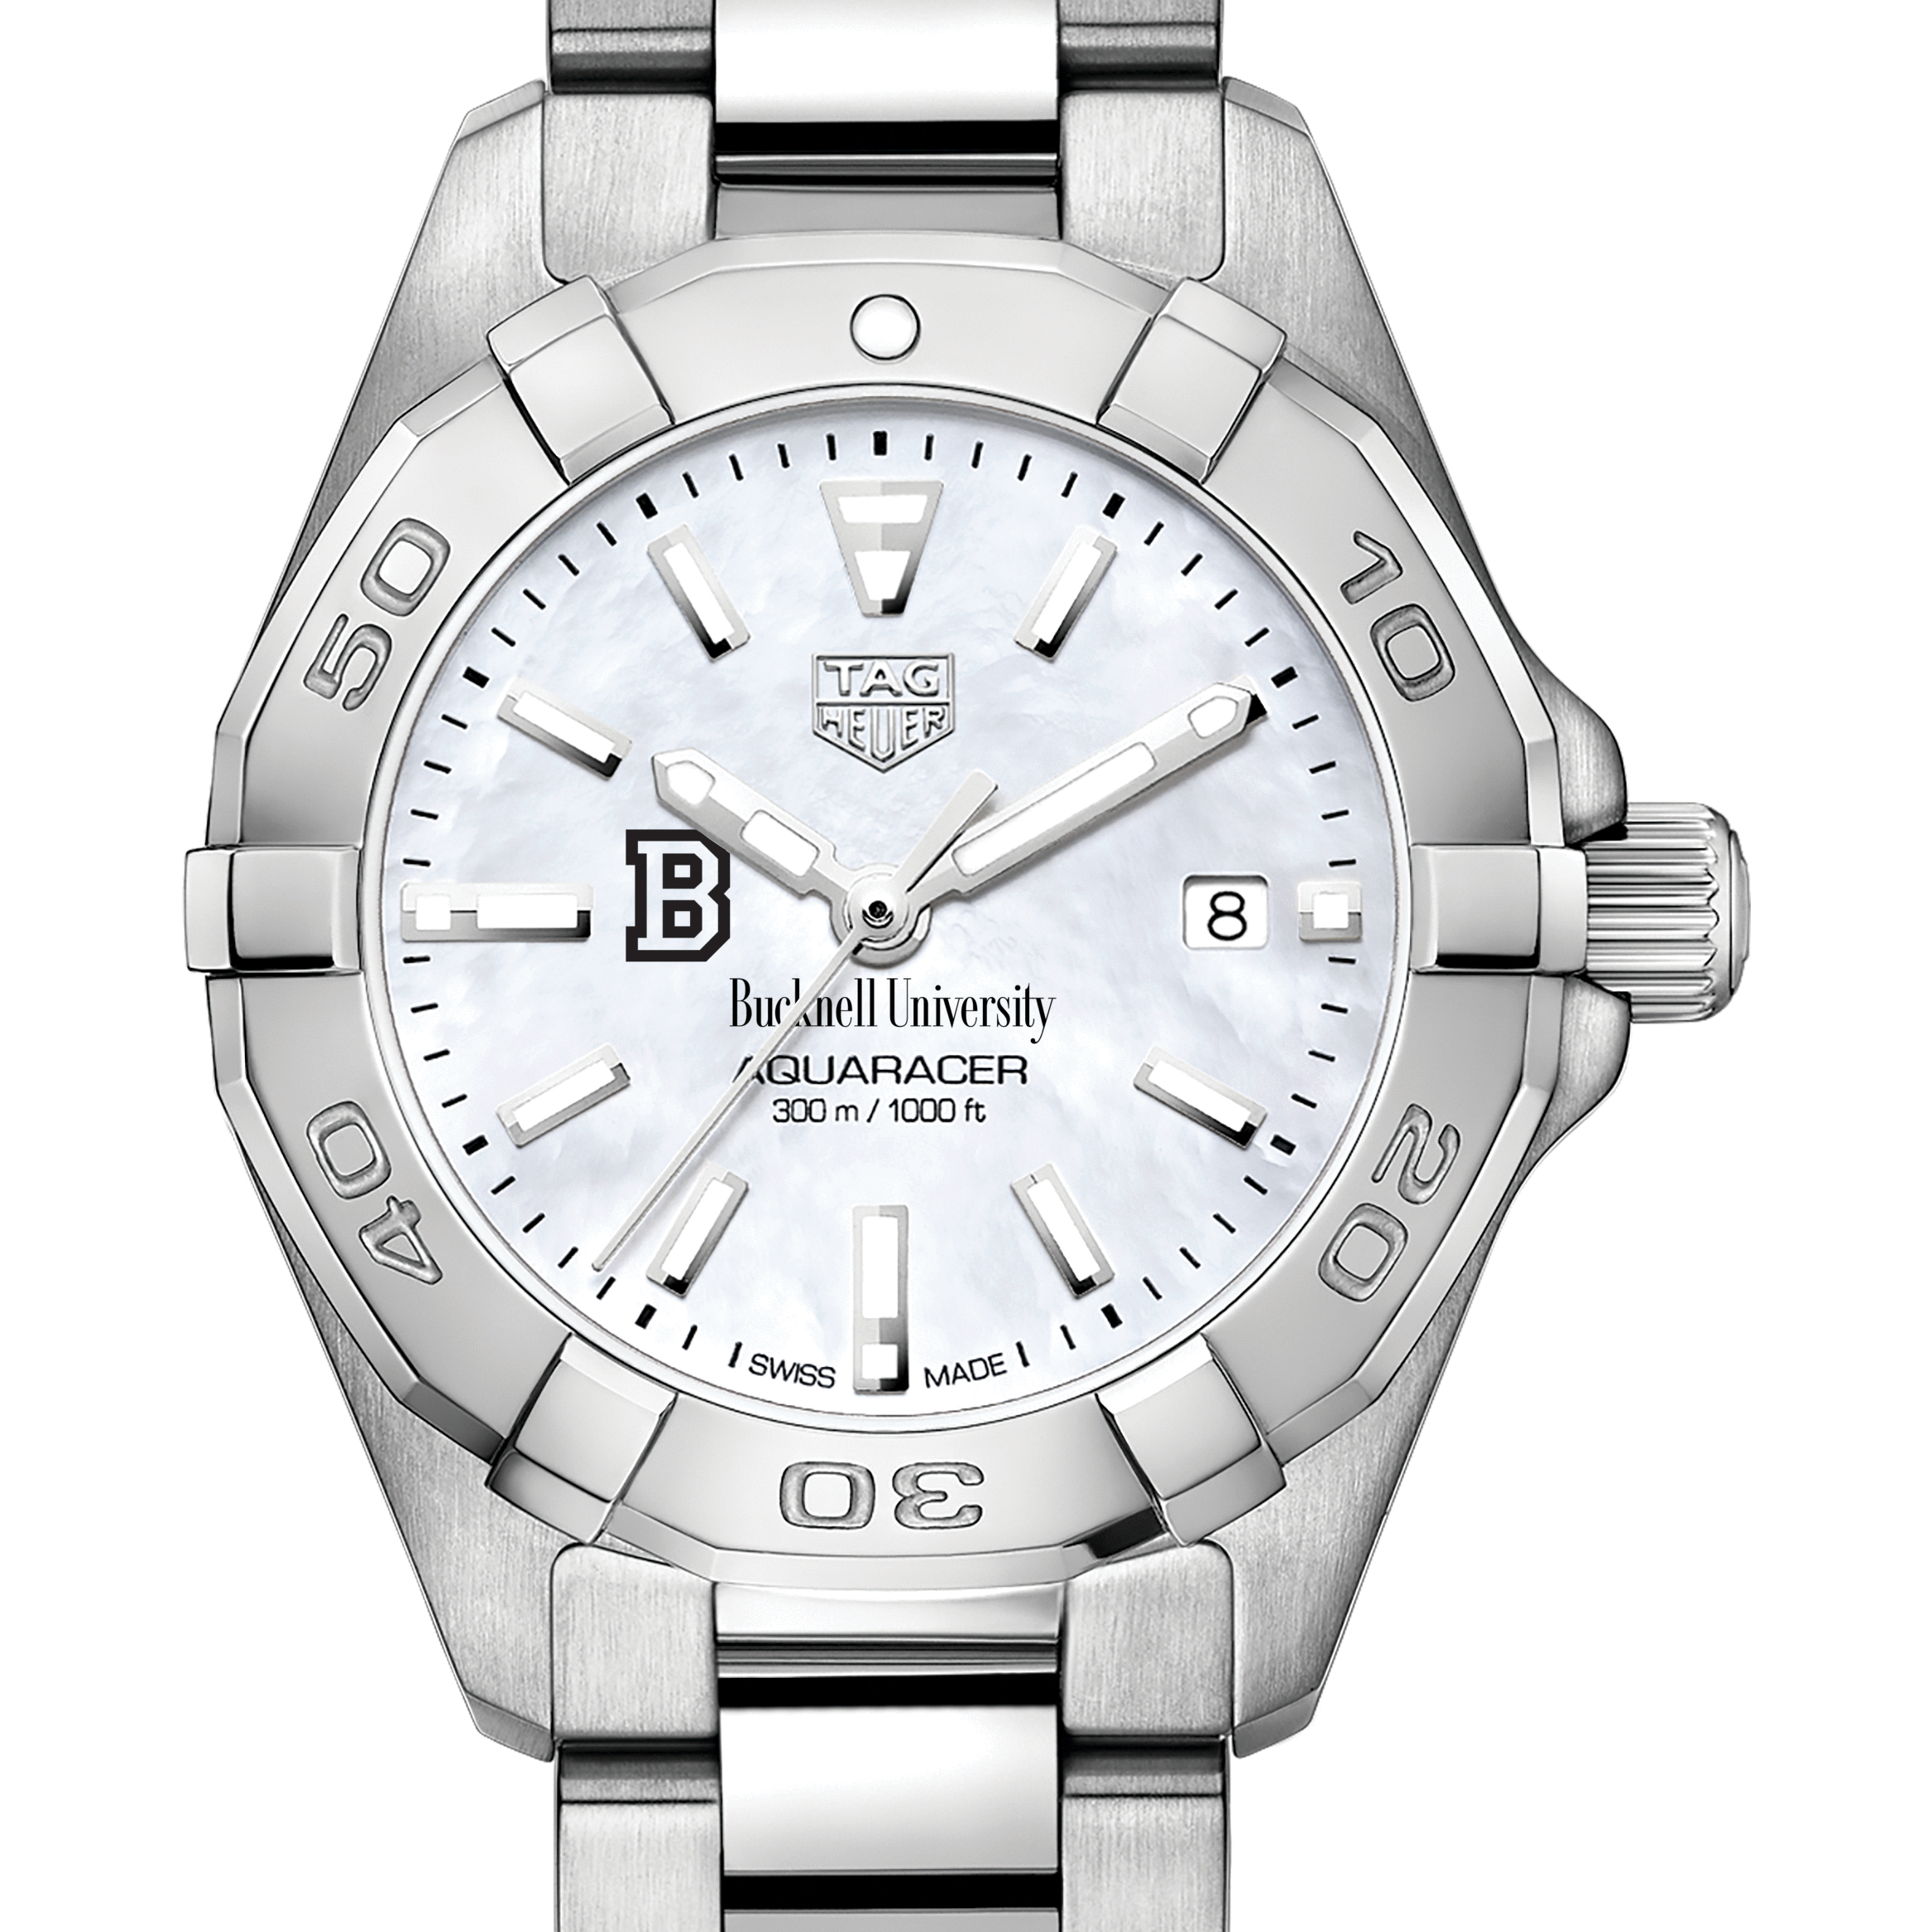 Bucknell Women's TAG Heuer Steel Aquaracer with MOP Dial